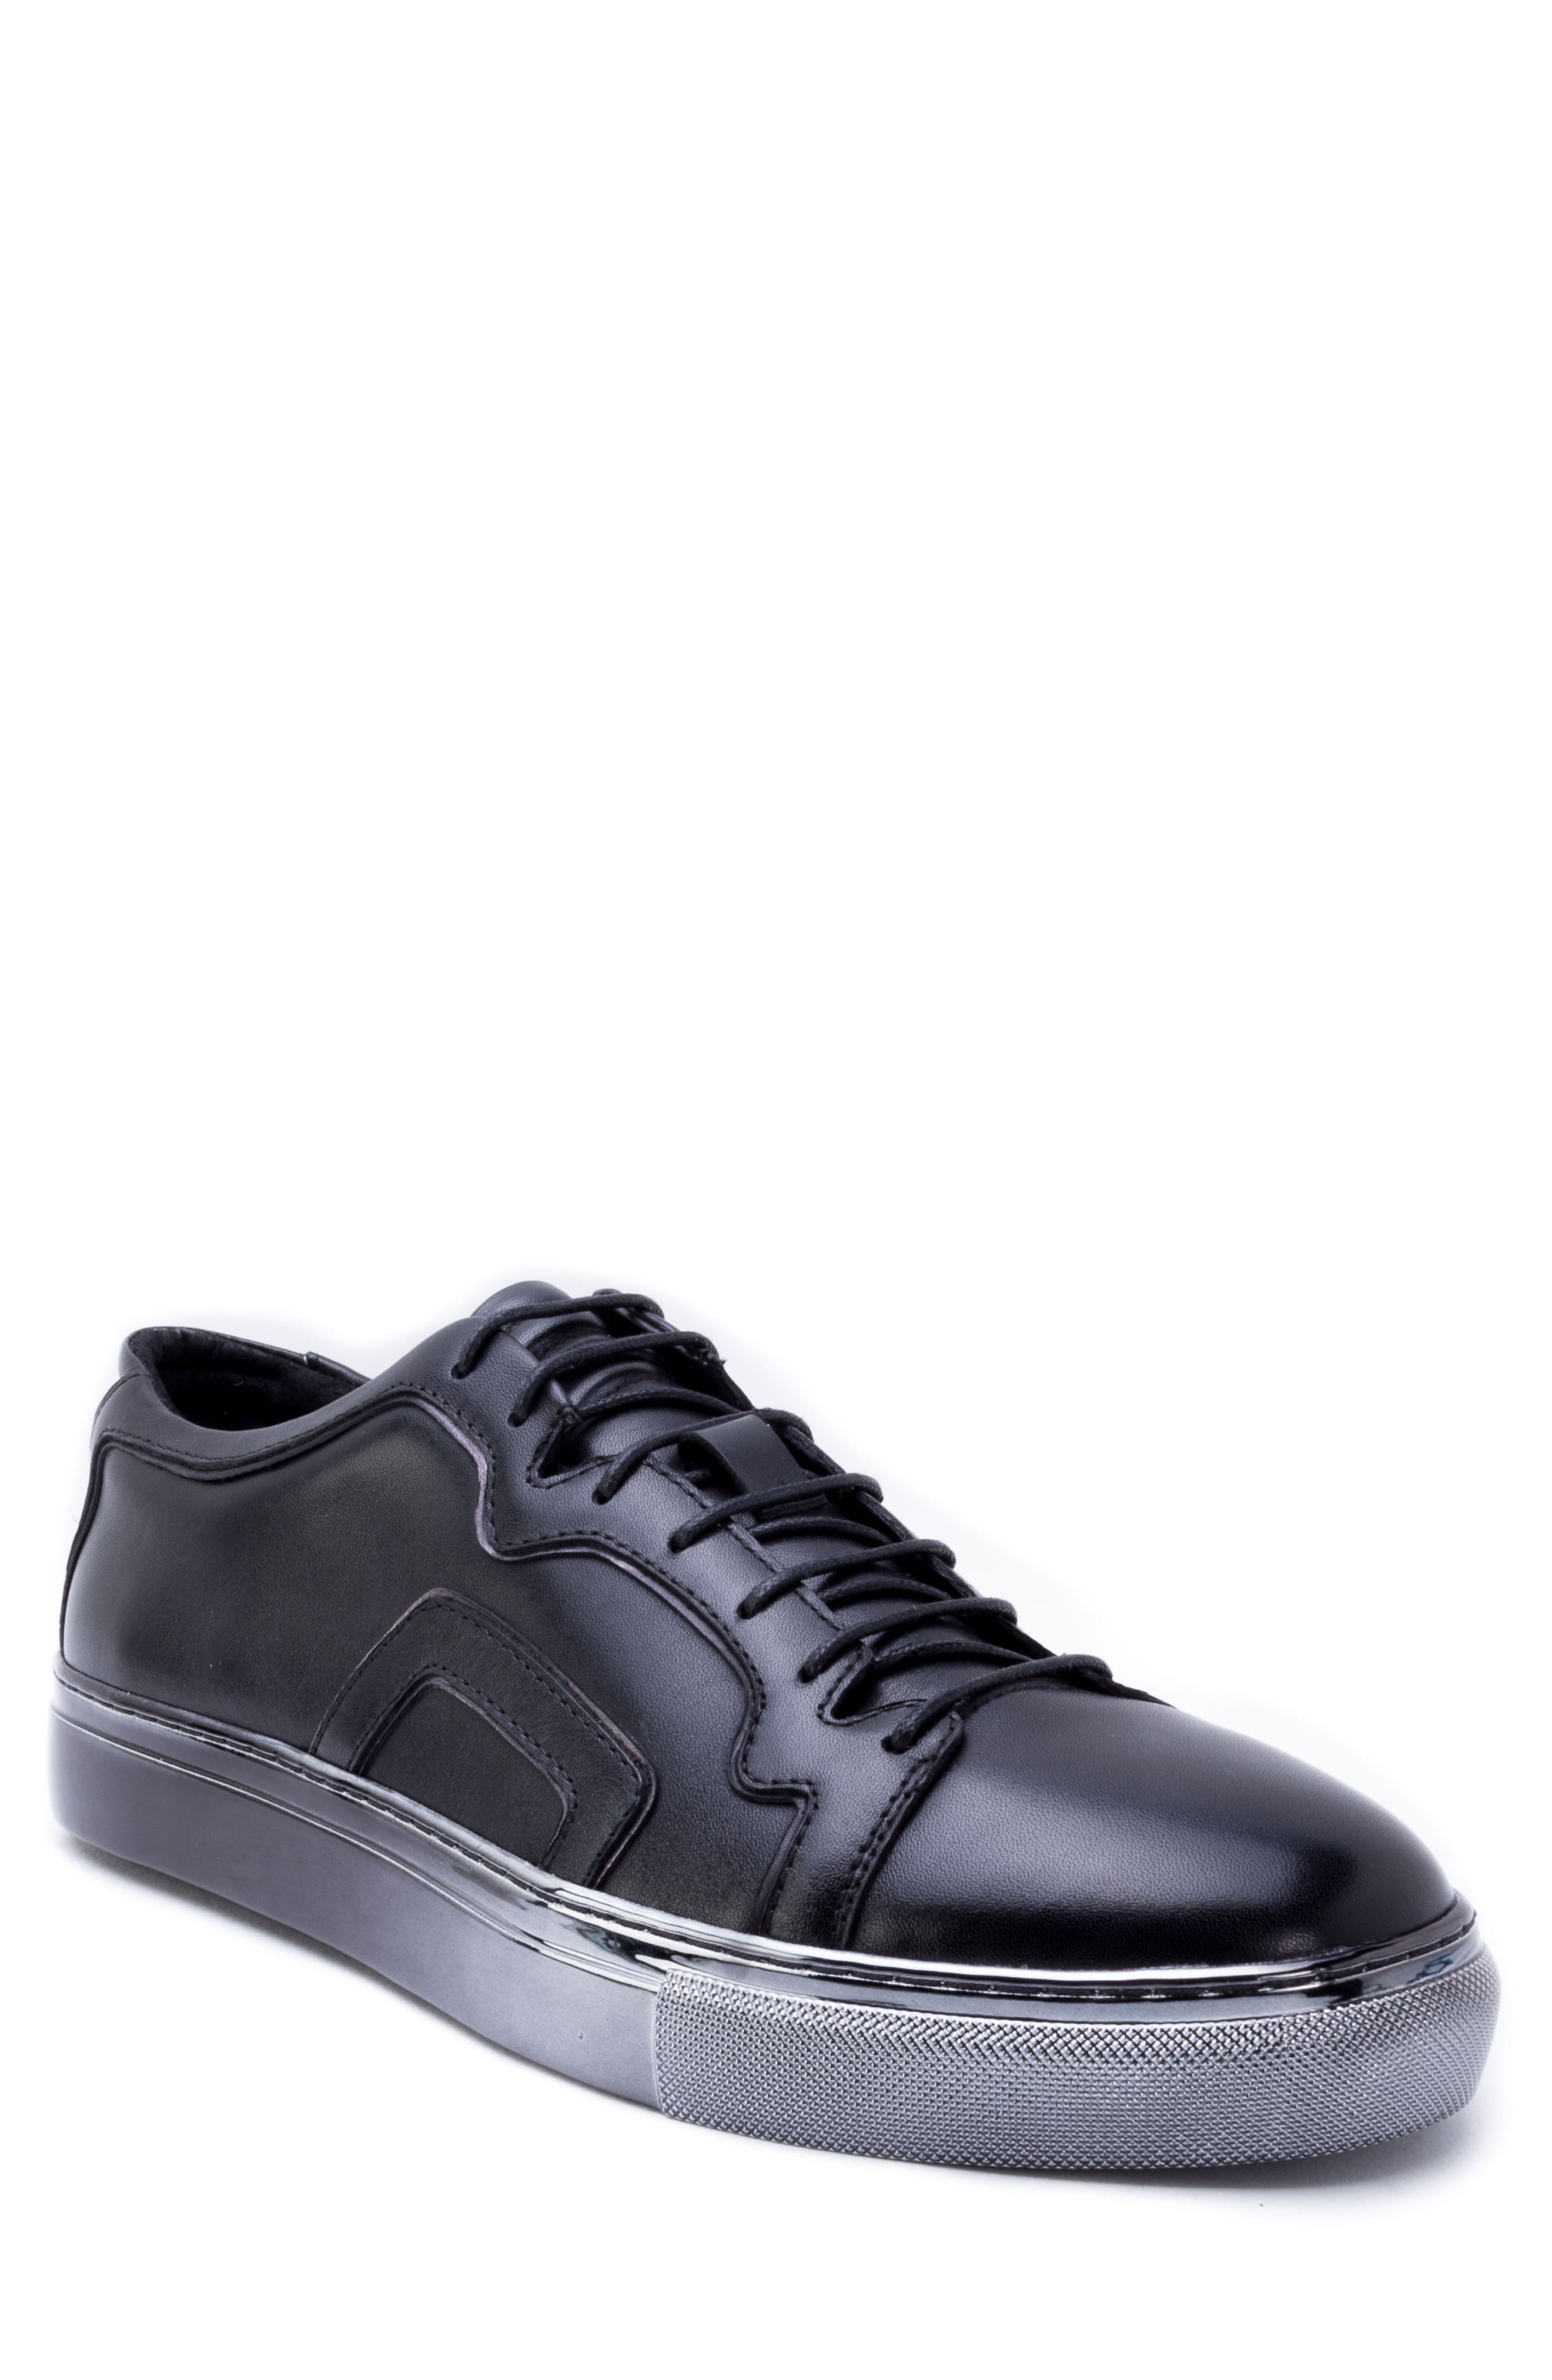 Caine Sneaker,                             Main thumbnail 1, color,                             BLACK LEATHER